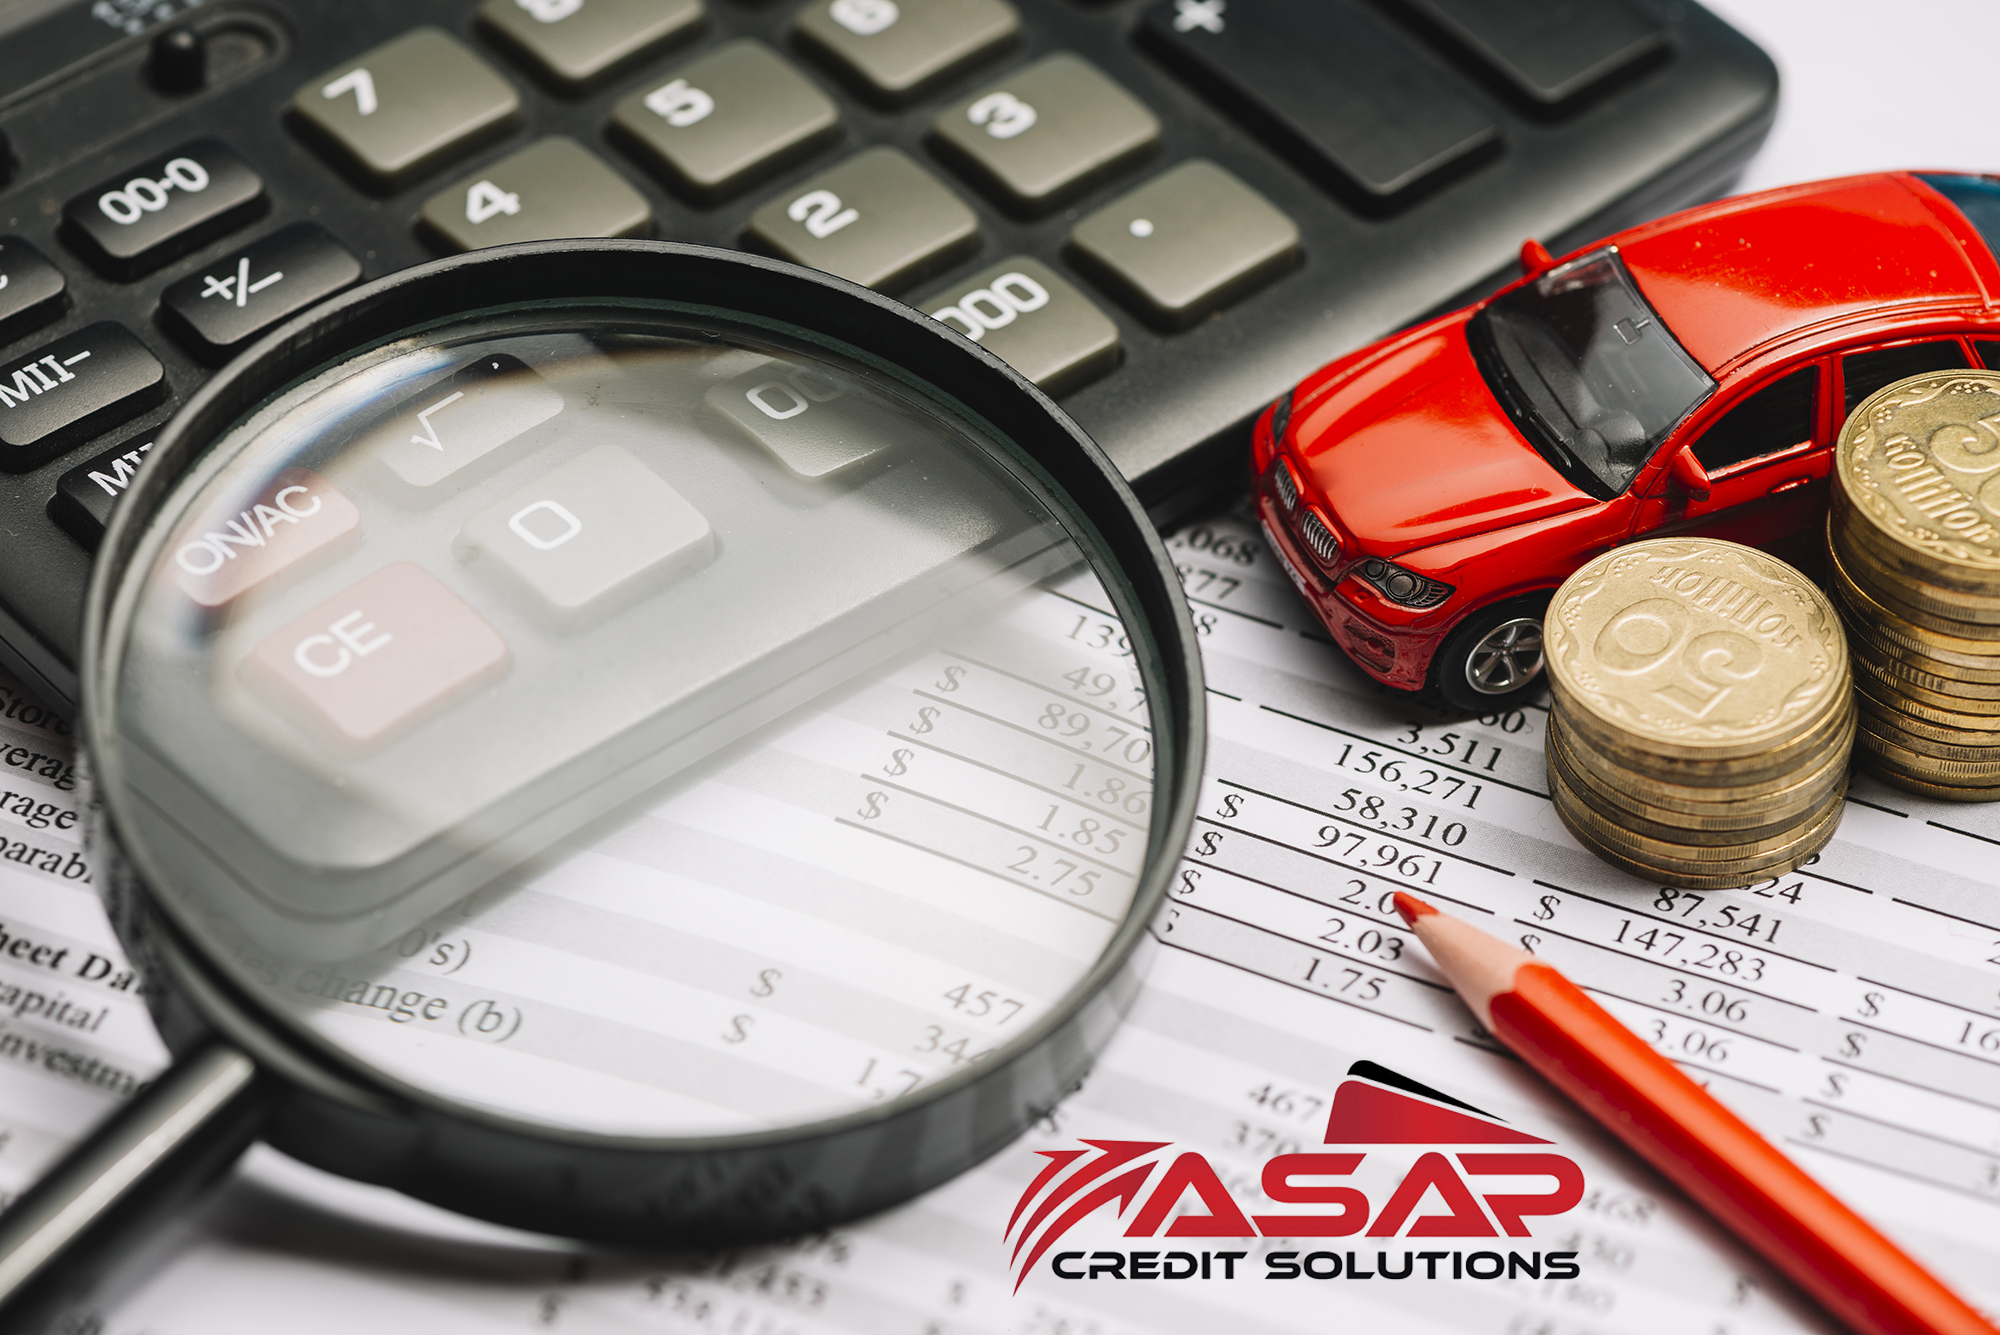 ASAP Credit Solutions Helped 500+ Families Accomplish Credit Approvals in 2019